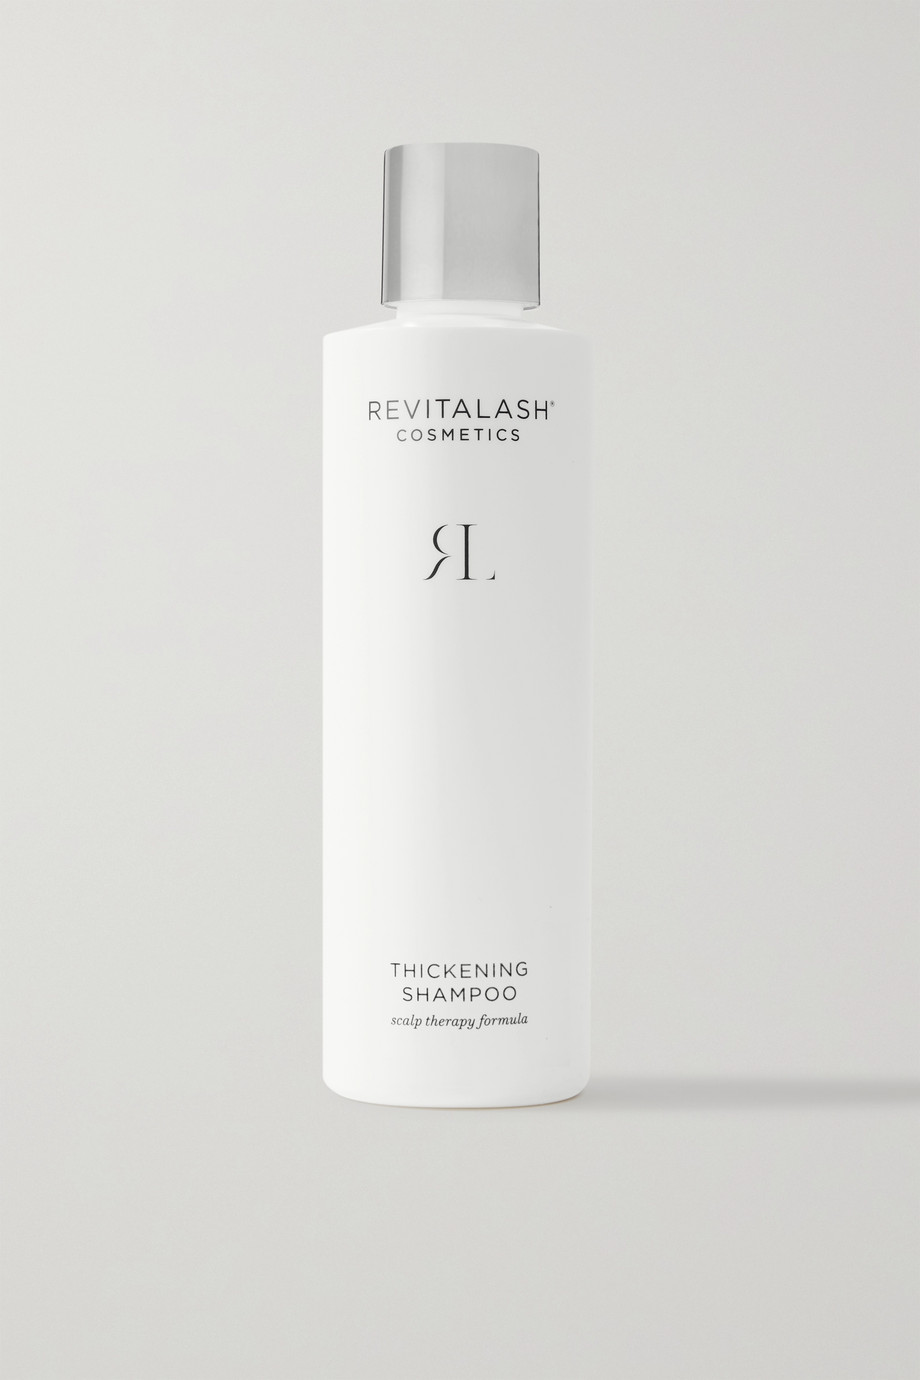 REVITALASH Thickening Shampoo, 250ml